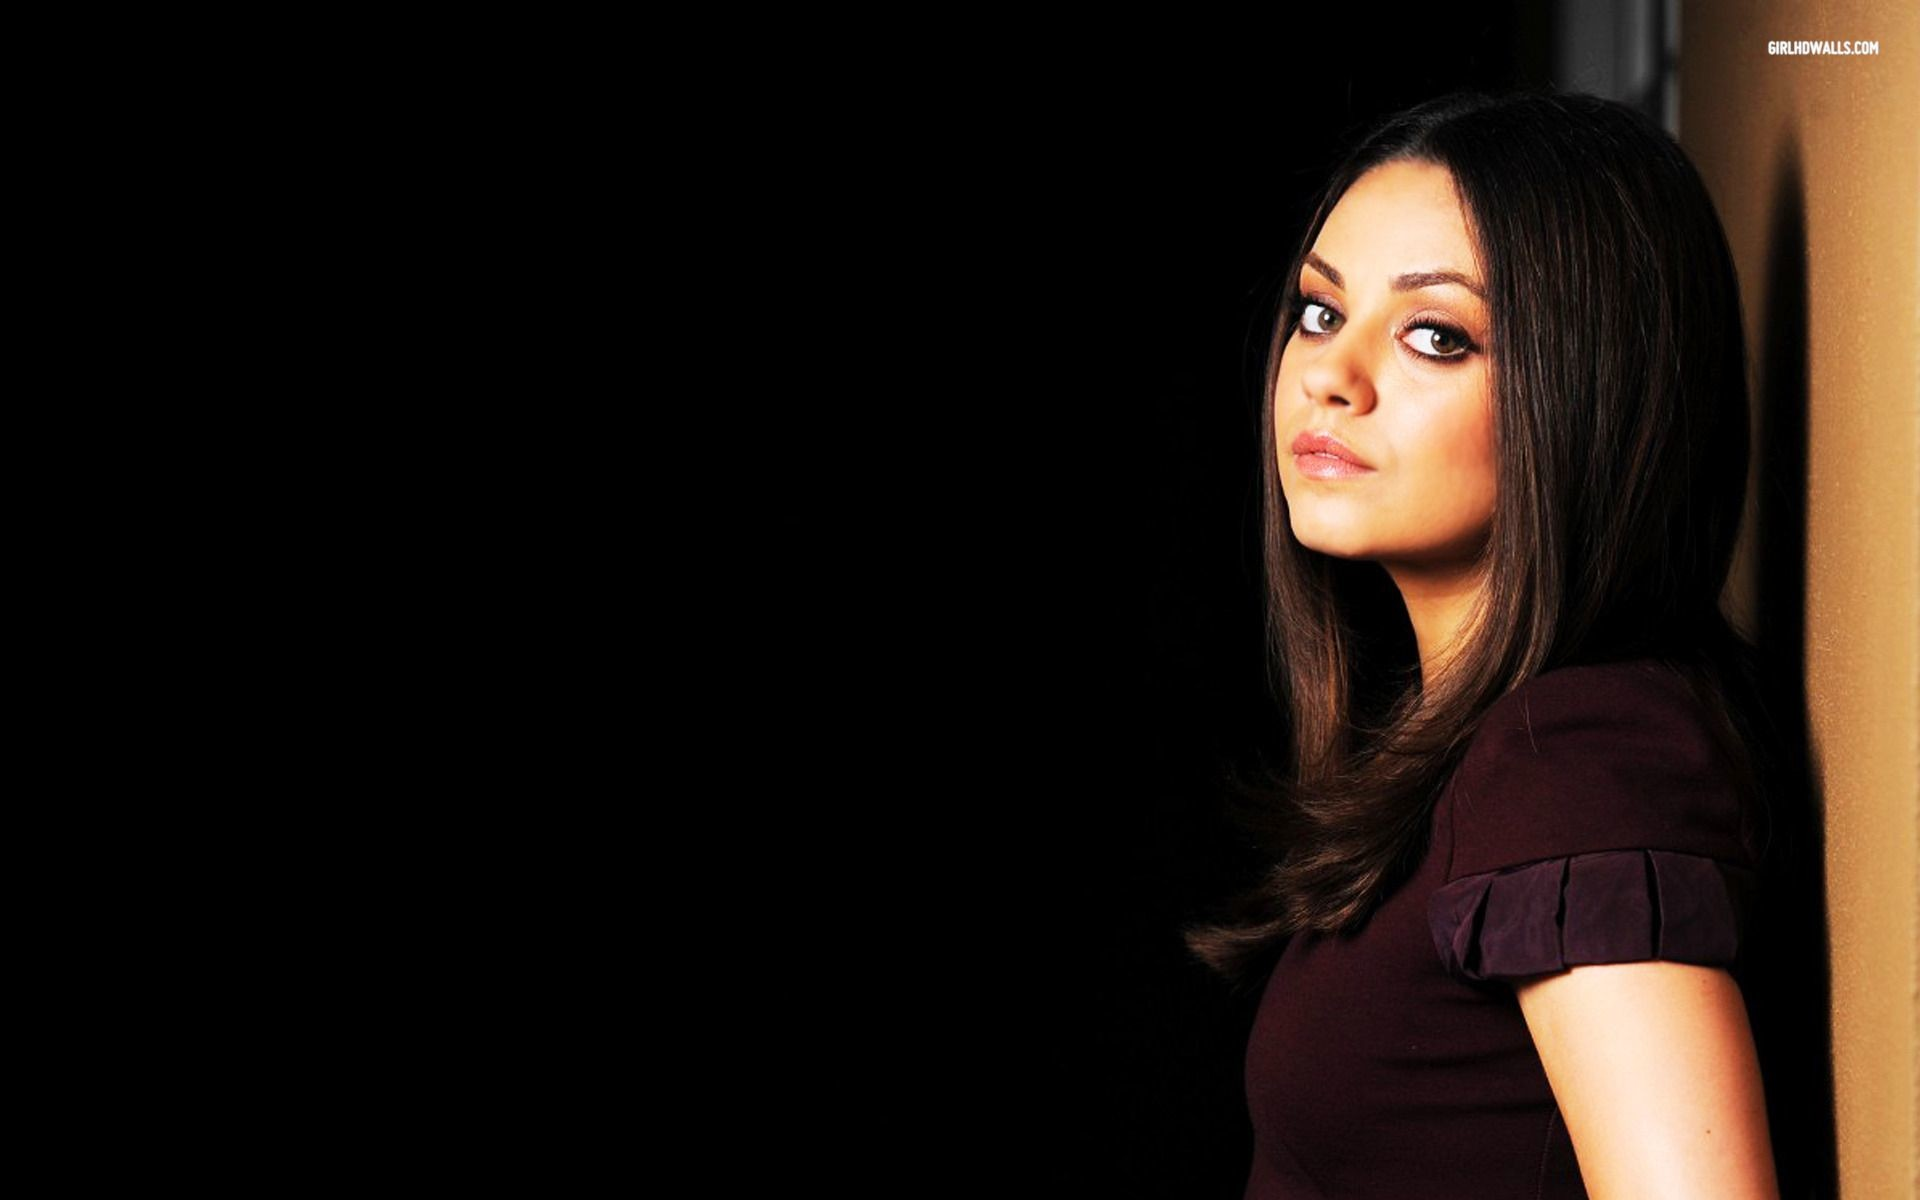 mila kunis wallpaper hd ·①